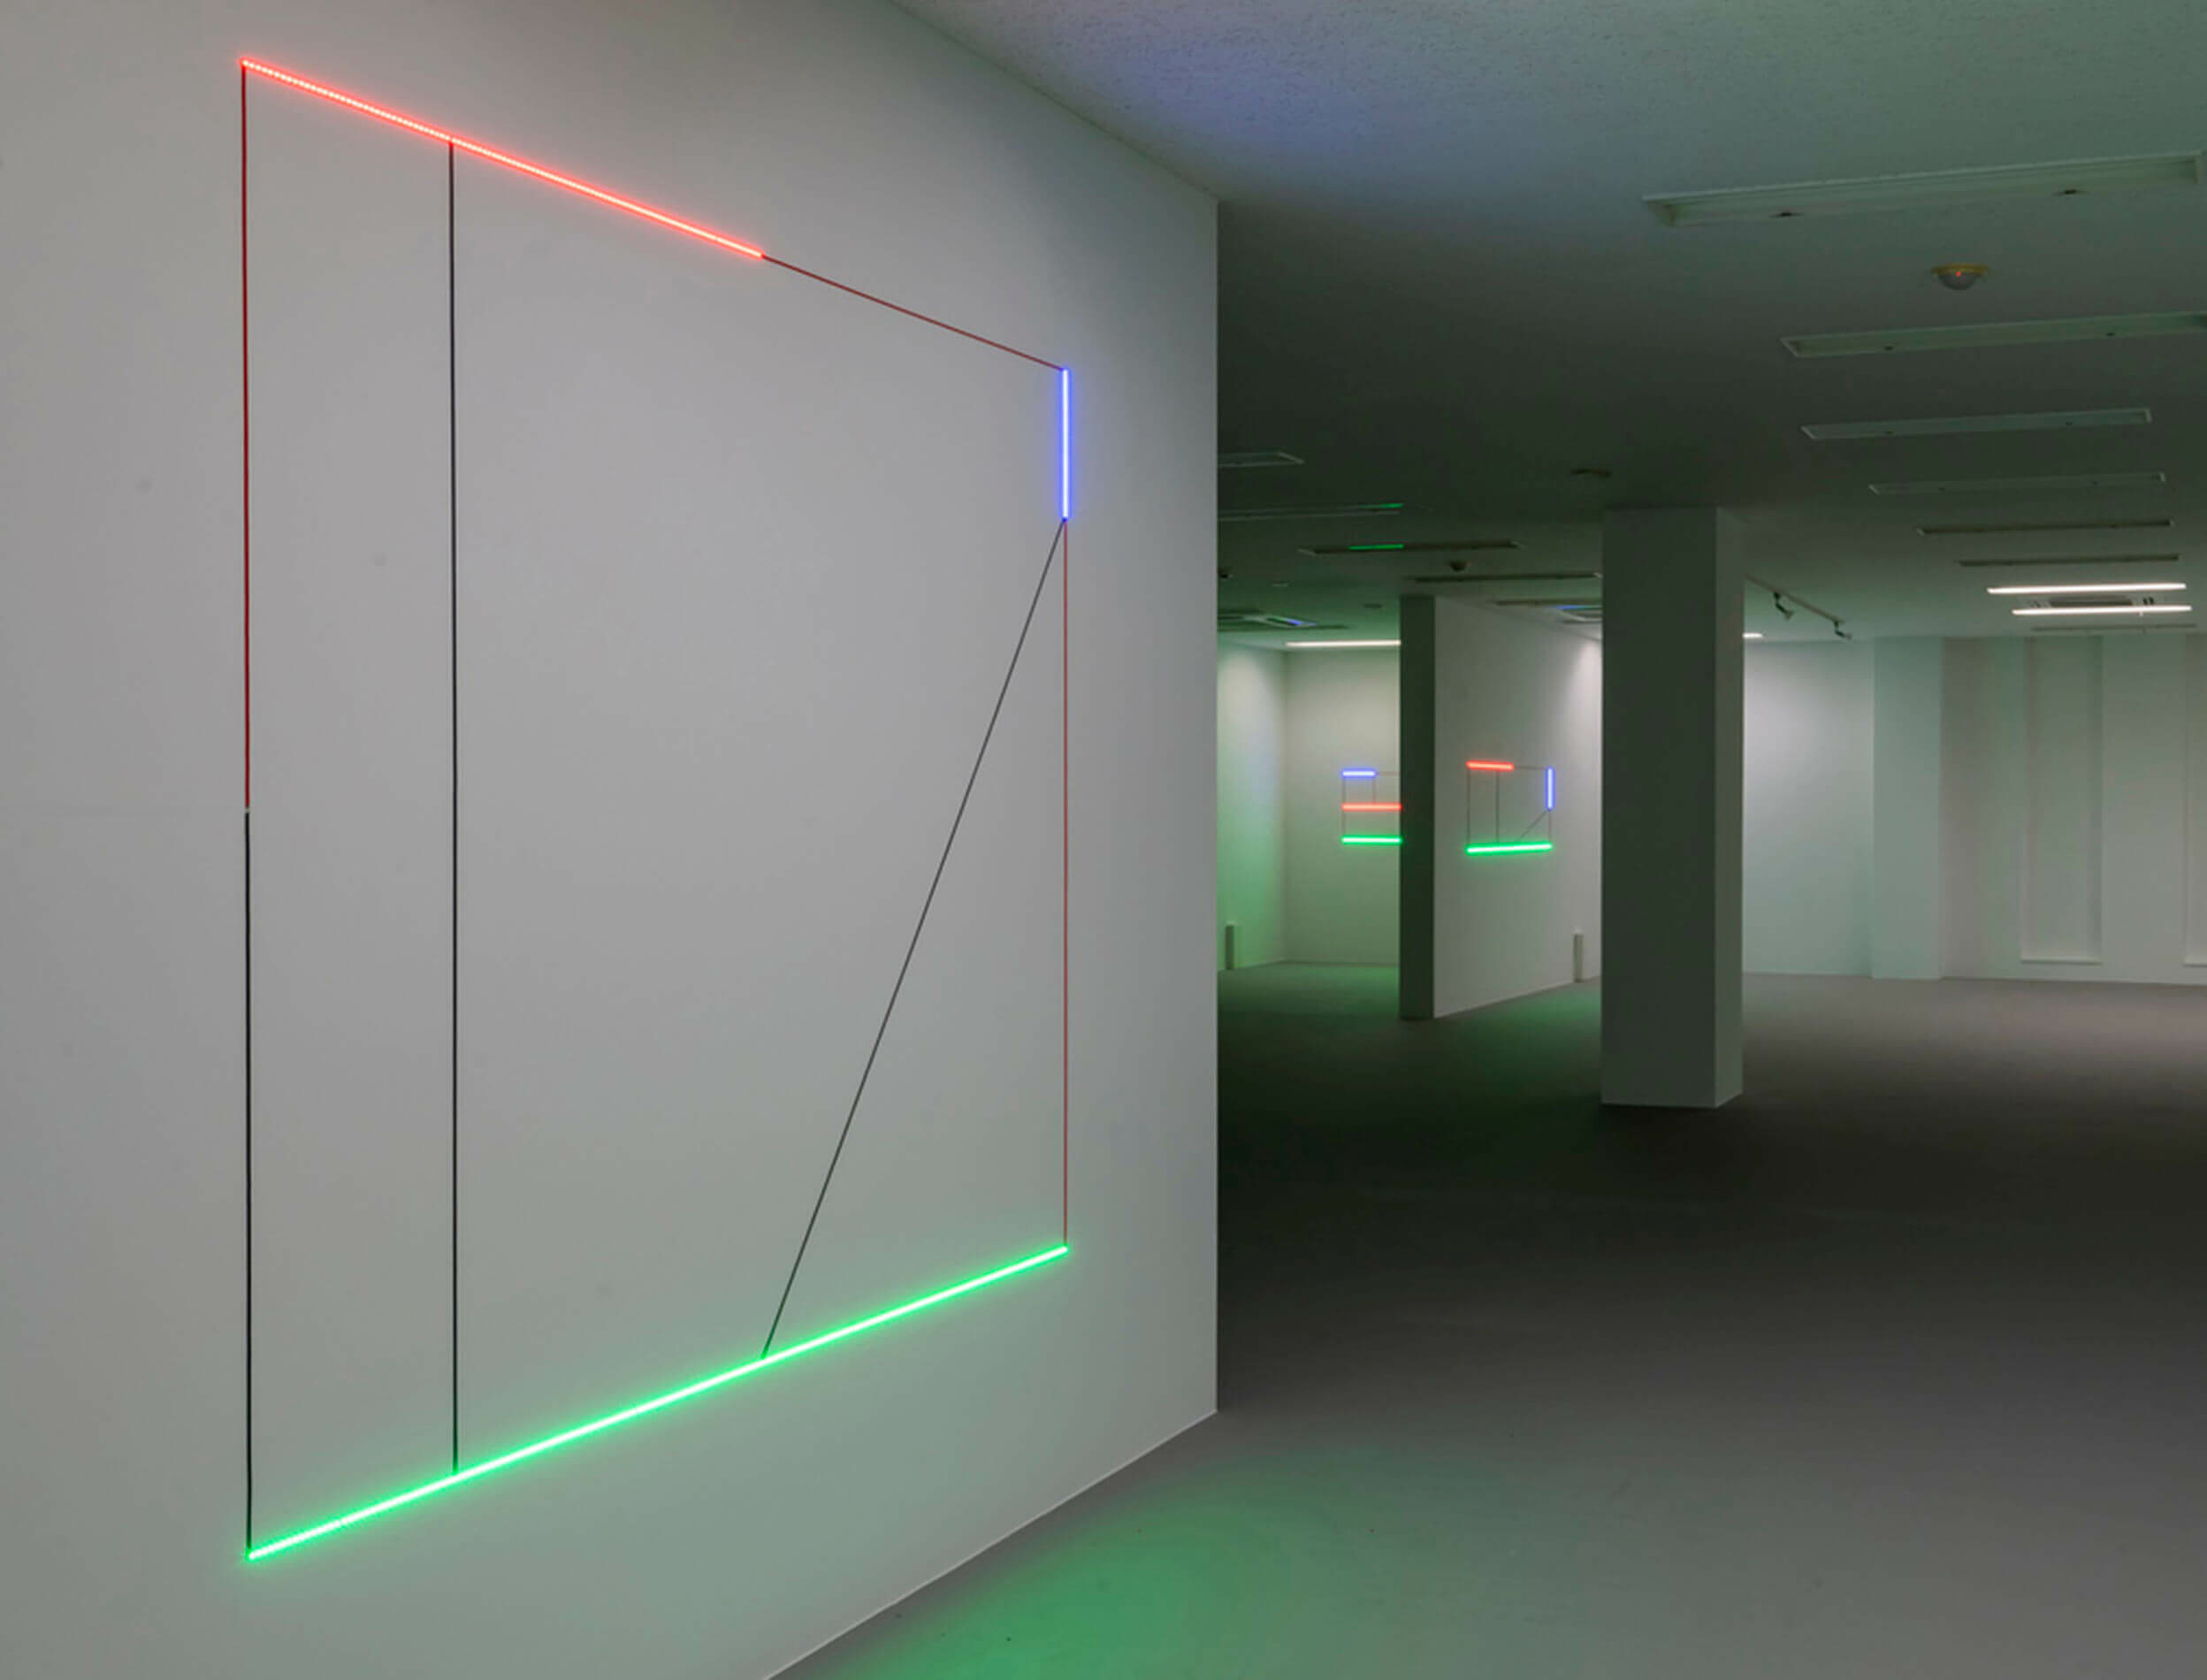 Final week of Haroon Mirza at CCA Kitakyushu, Japan